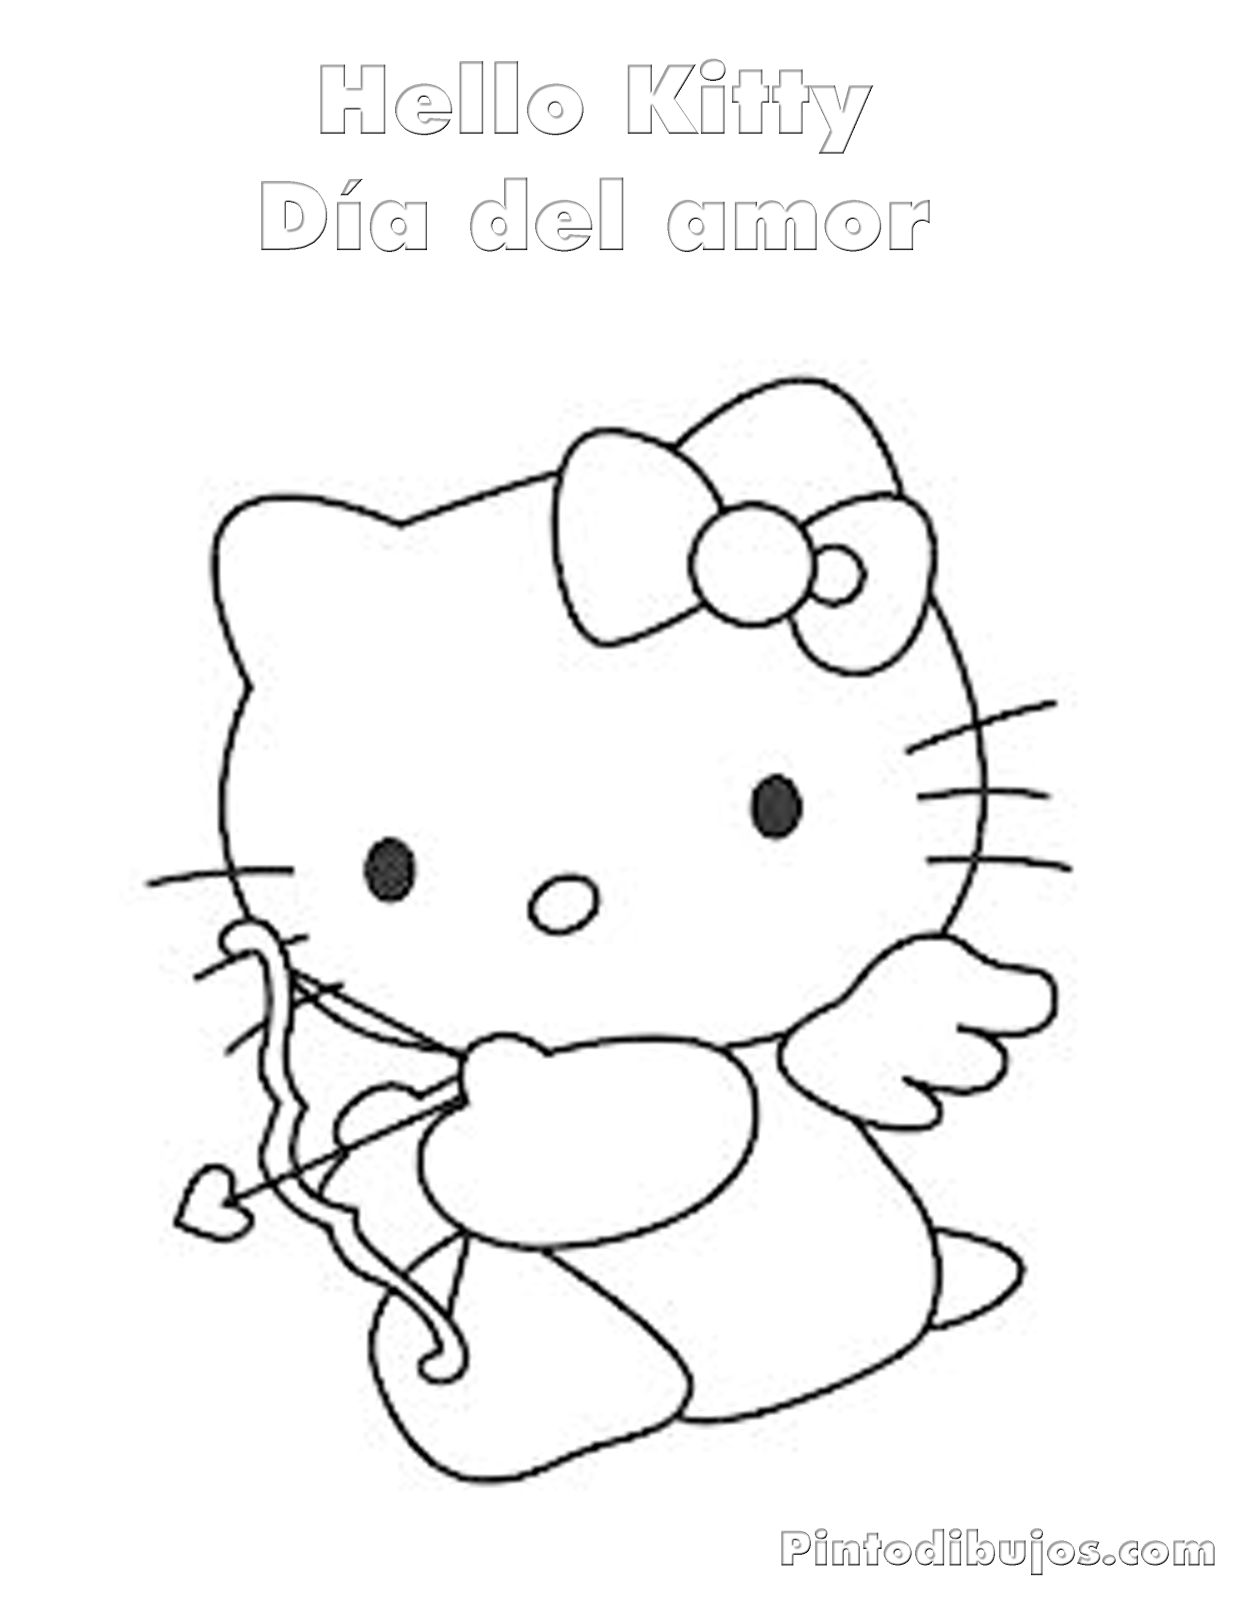 Hello Kitty Valentines day coloring pages | art | Pinterest ...